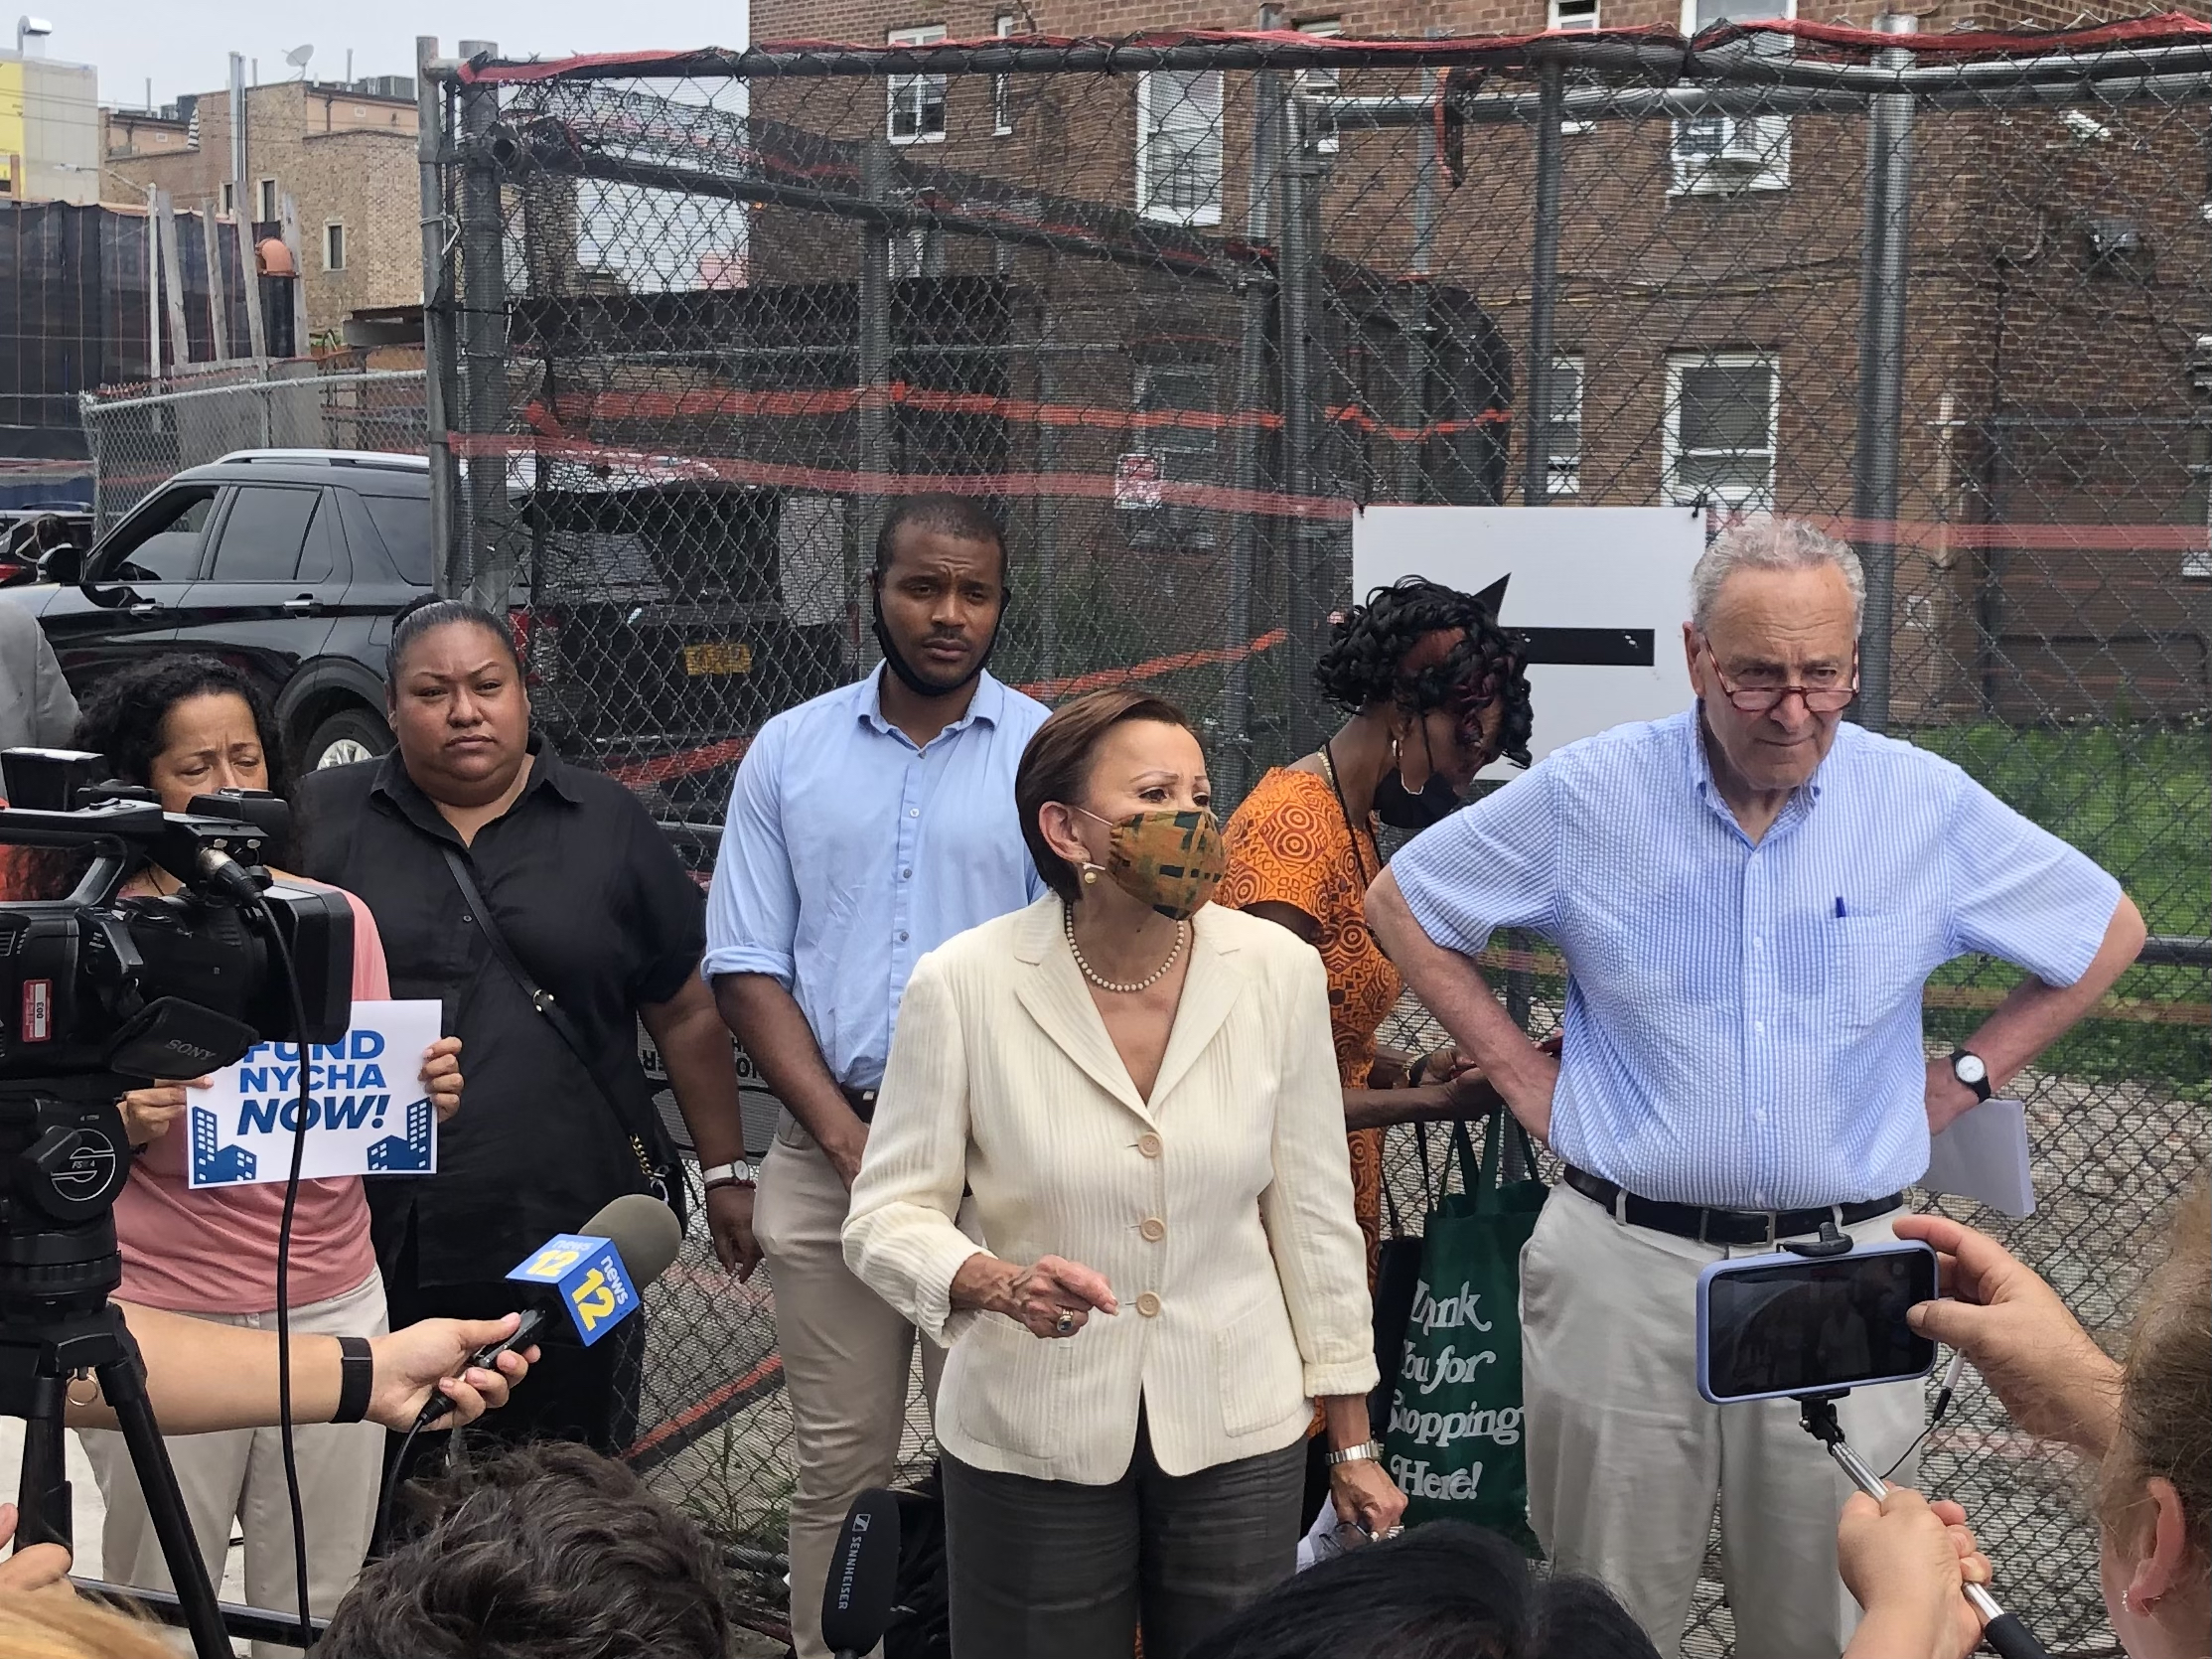 Sen. Chuck Schumer, Rep. Nydia Velazquez, City Officials, Join NYCHA Residents